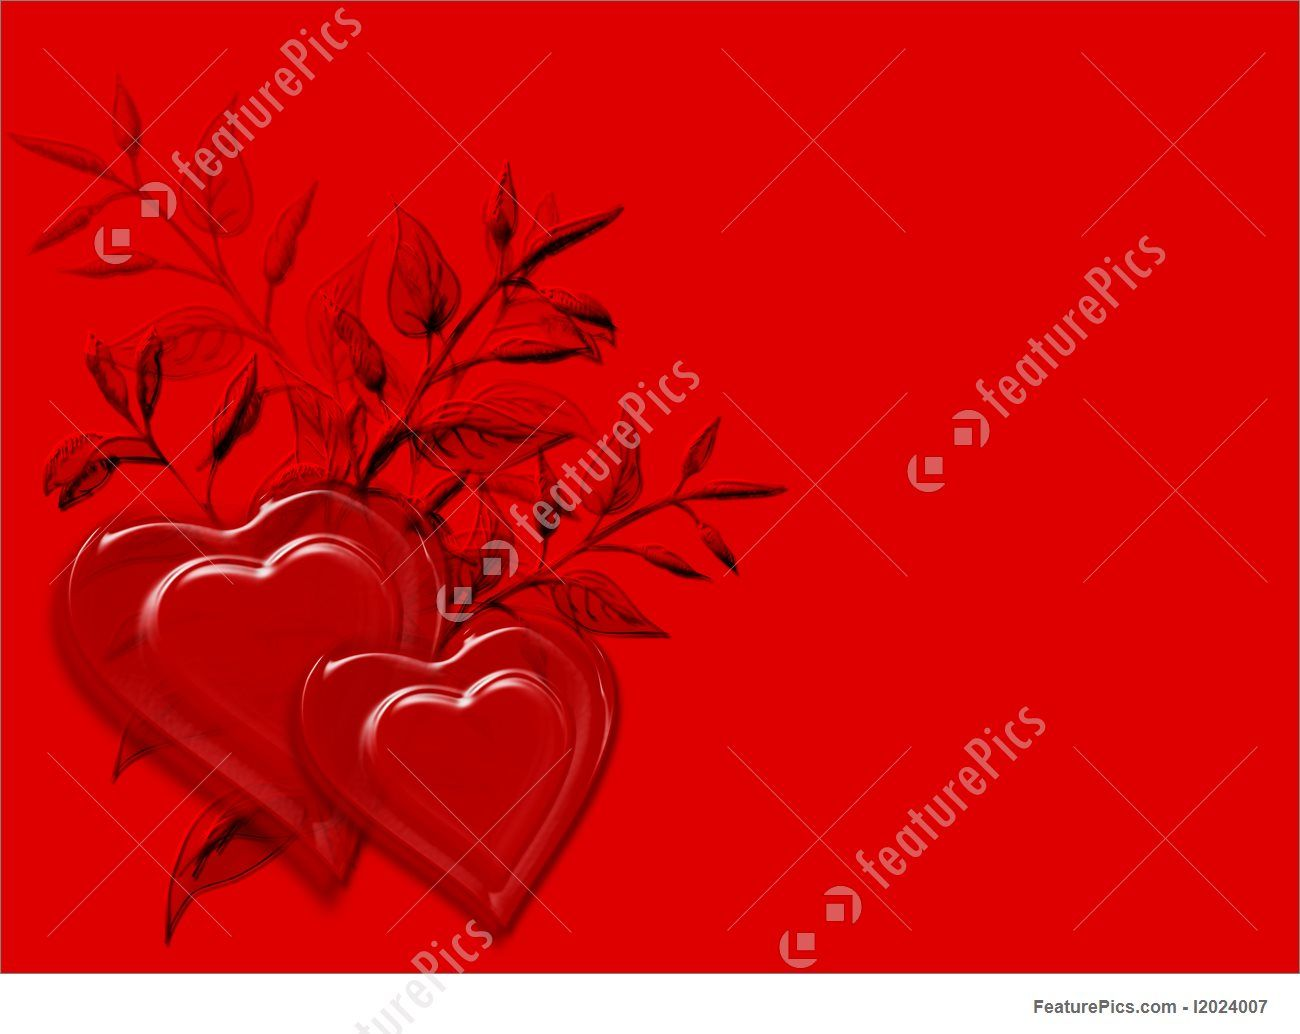 Gold Scroll And Hanging Hearts On Red Background Royalty Free